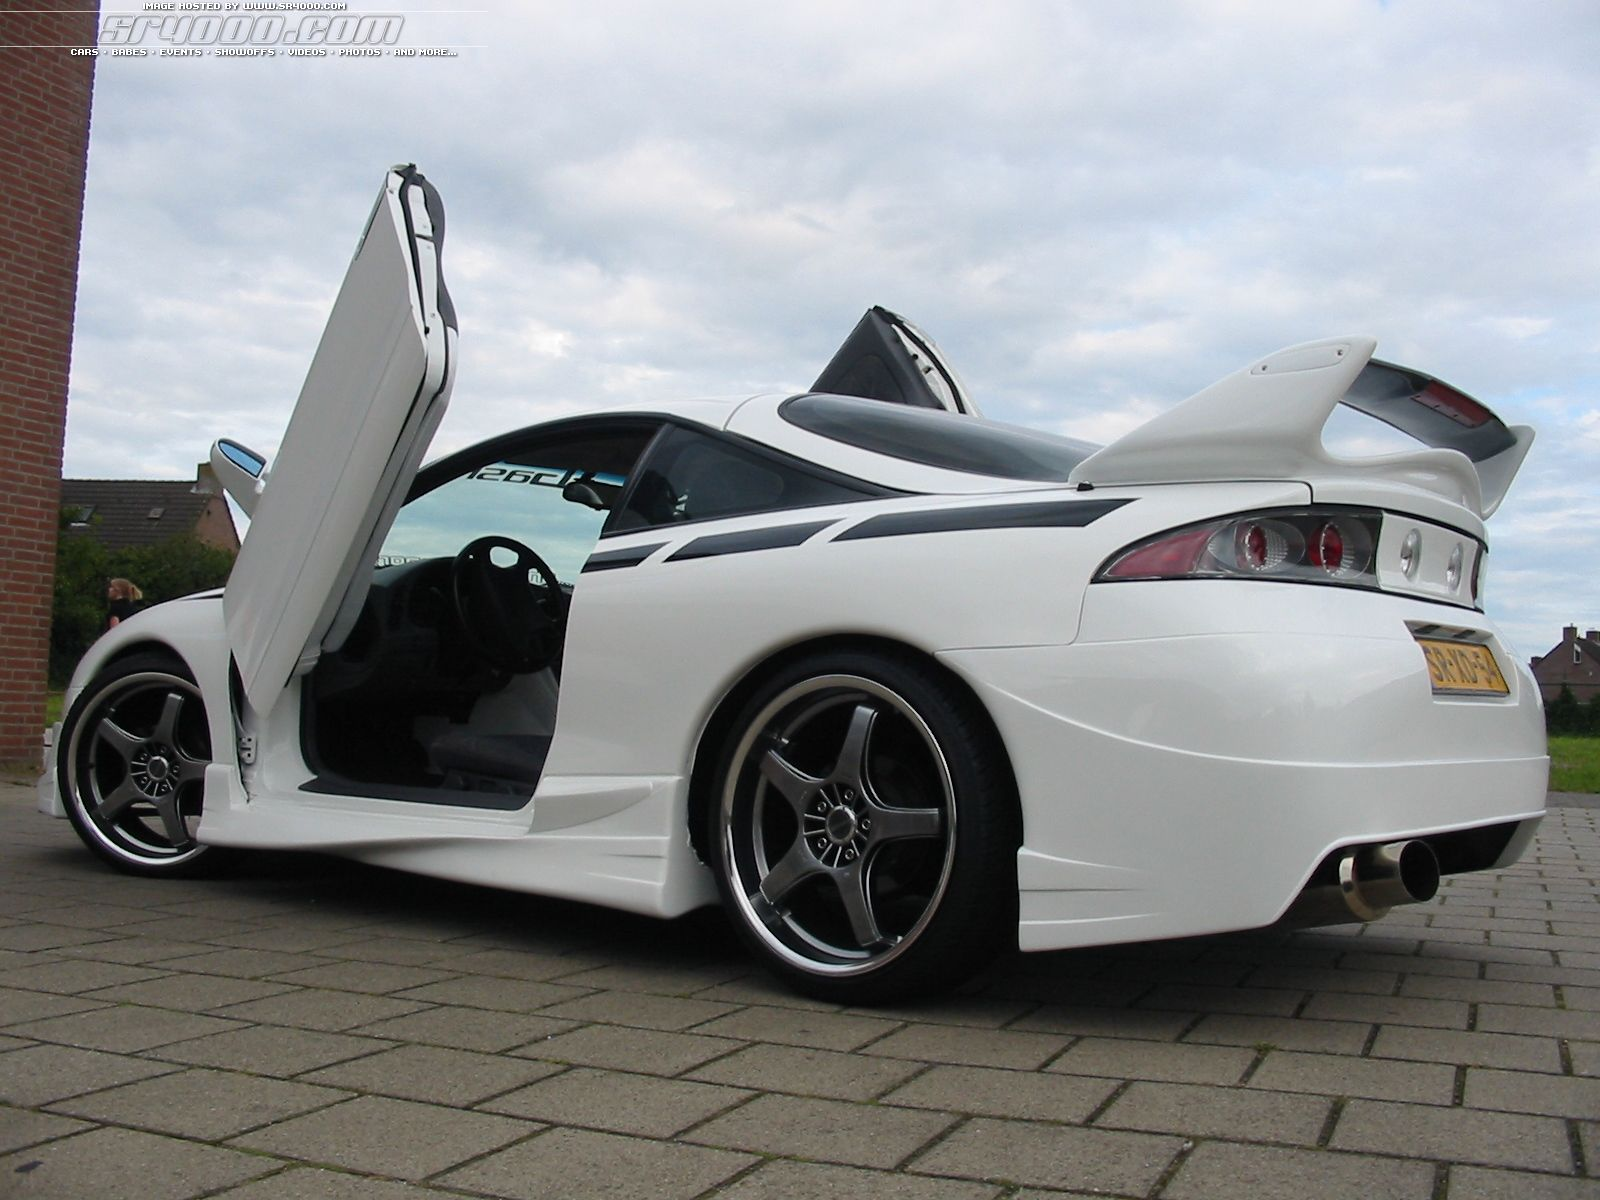 Awesome Mitsubishi Eclipse GT Rear Side View HD Wallpaper